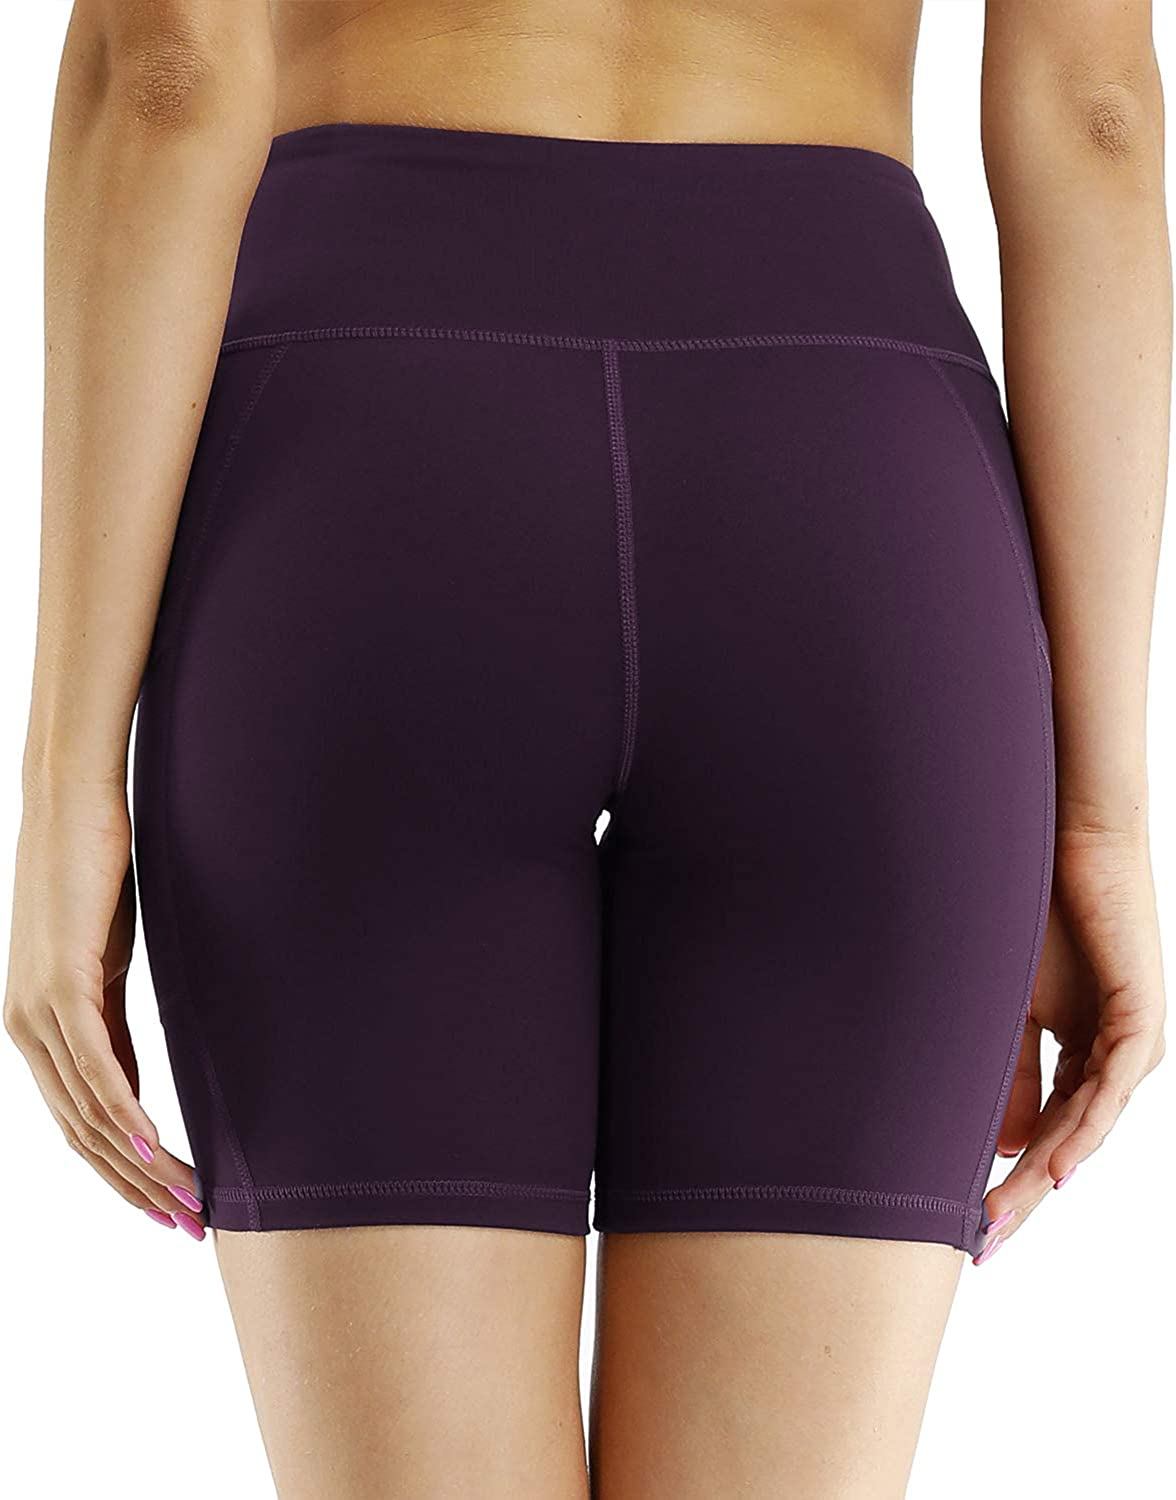 LastFor1 8 //5 Womens High Waist Yoga Shorts Compression Workout Running Bike Shorts Side Pockets